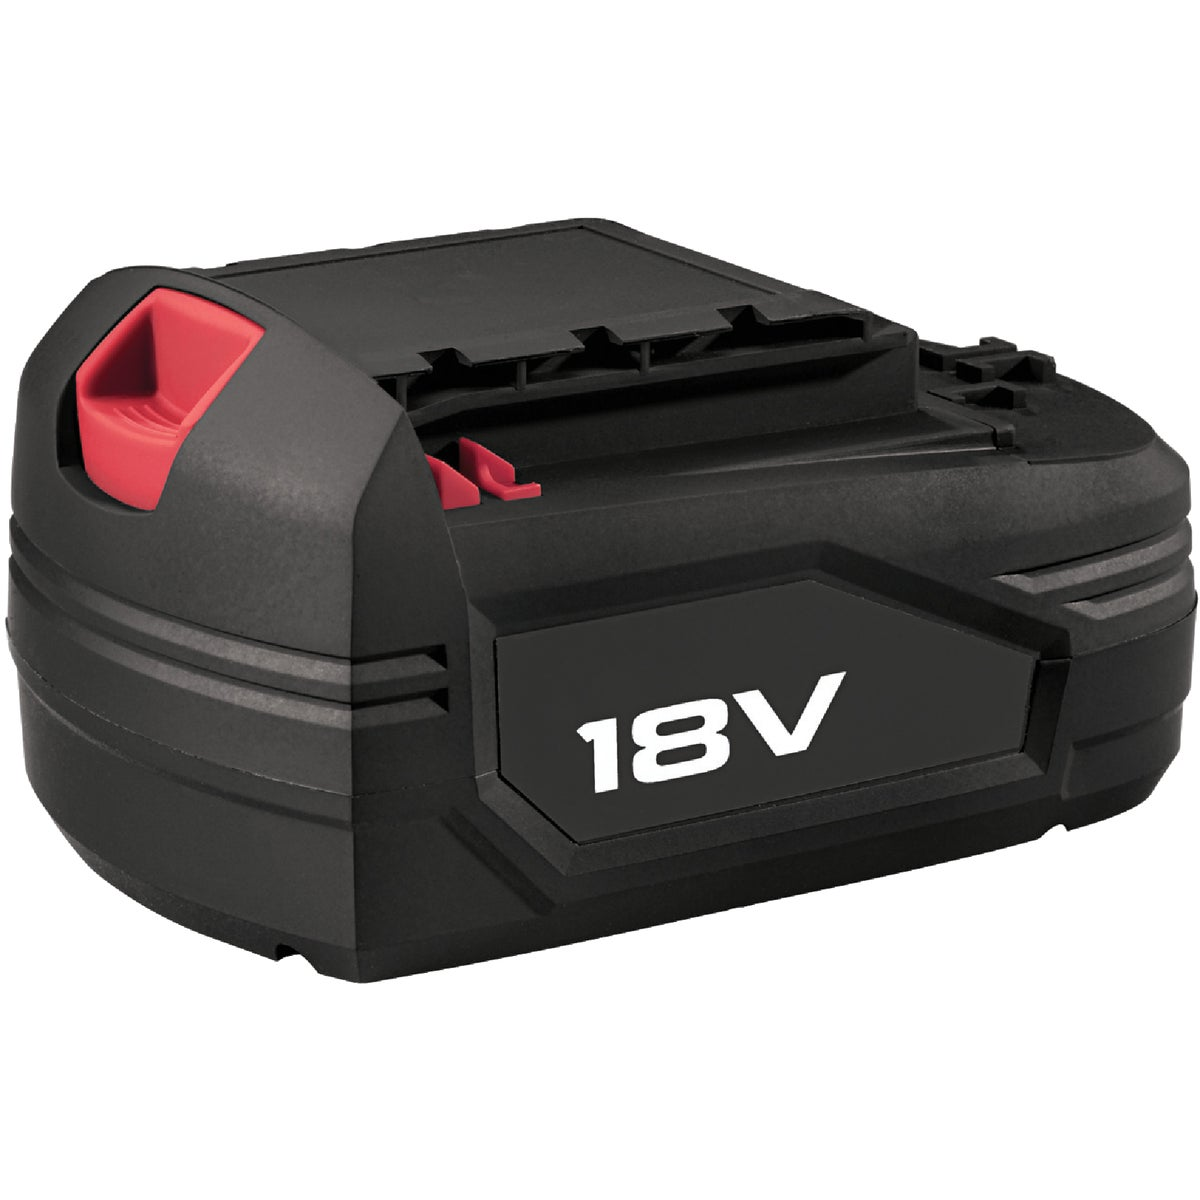 18V SLIDE PACK BATTERY - SB18C by Robt Bosch Tool Skil